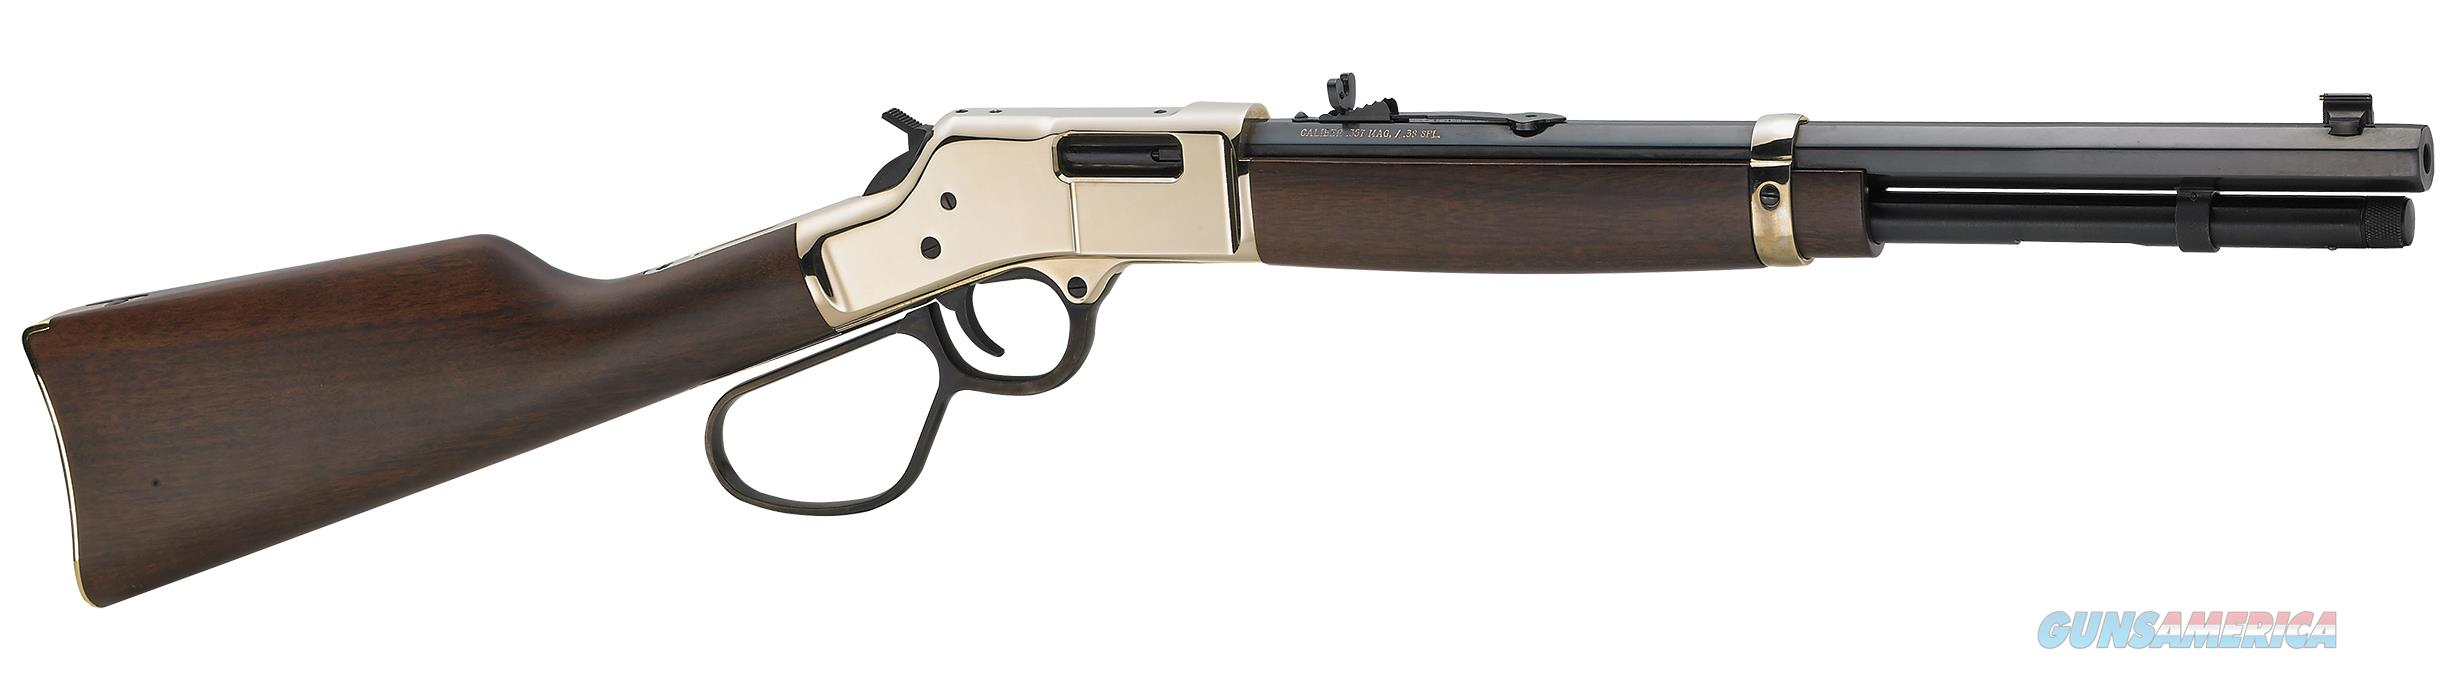 New! Henry .357/.38 special Rifle  Guns > Rifles > Henry Rifle Company